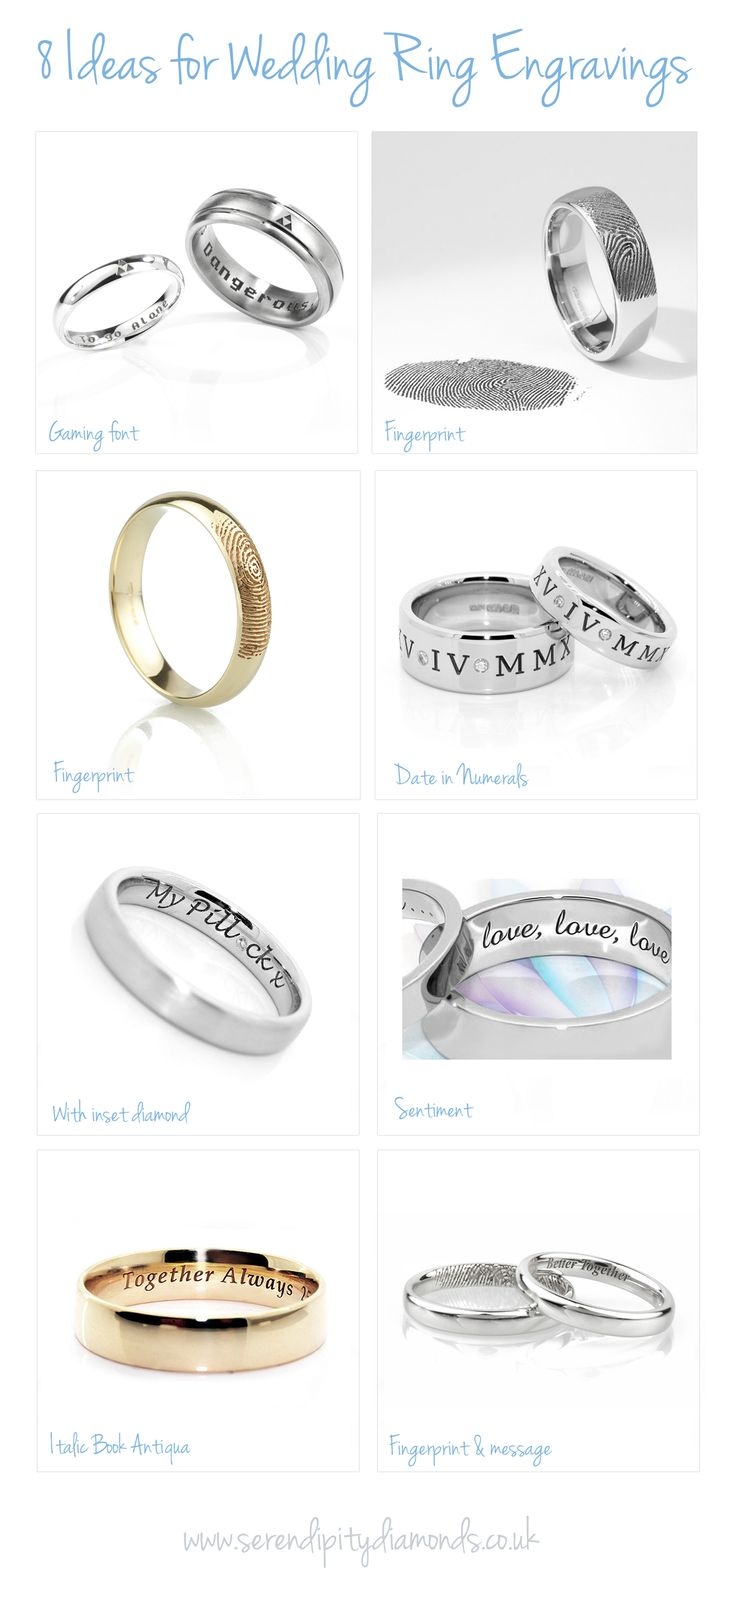 Ideas and inspiration for engraved wedding rings. Visit our dedicated information page for more ideas on cost and how to commission an engraved wedding ring with message, name, date or a completely unique design such as a fingerprint.